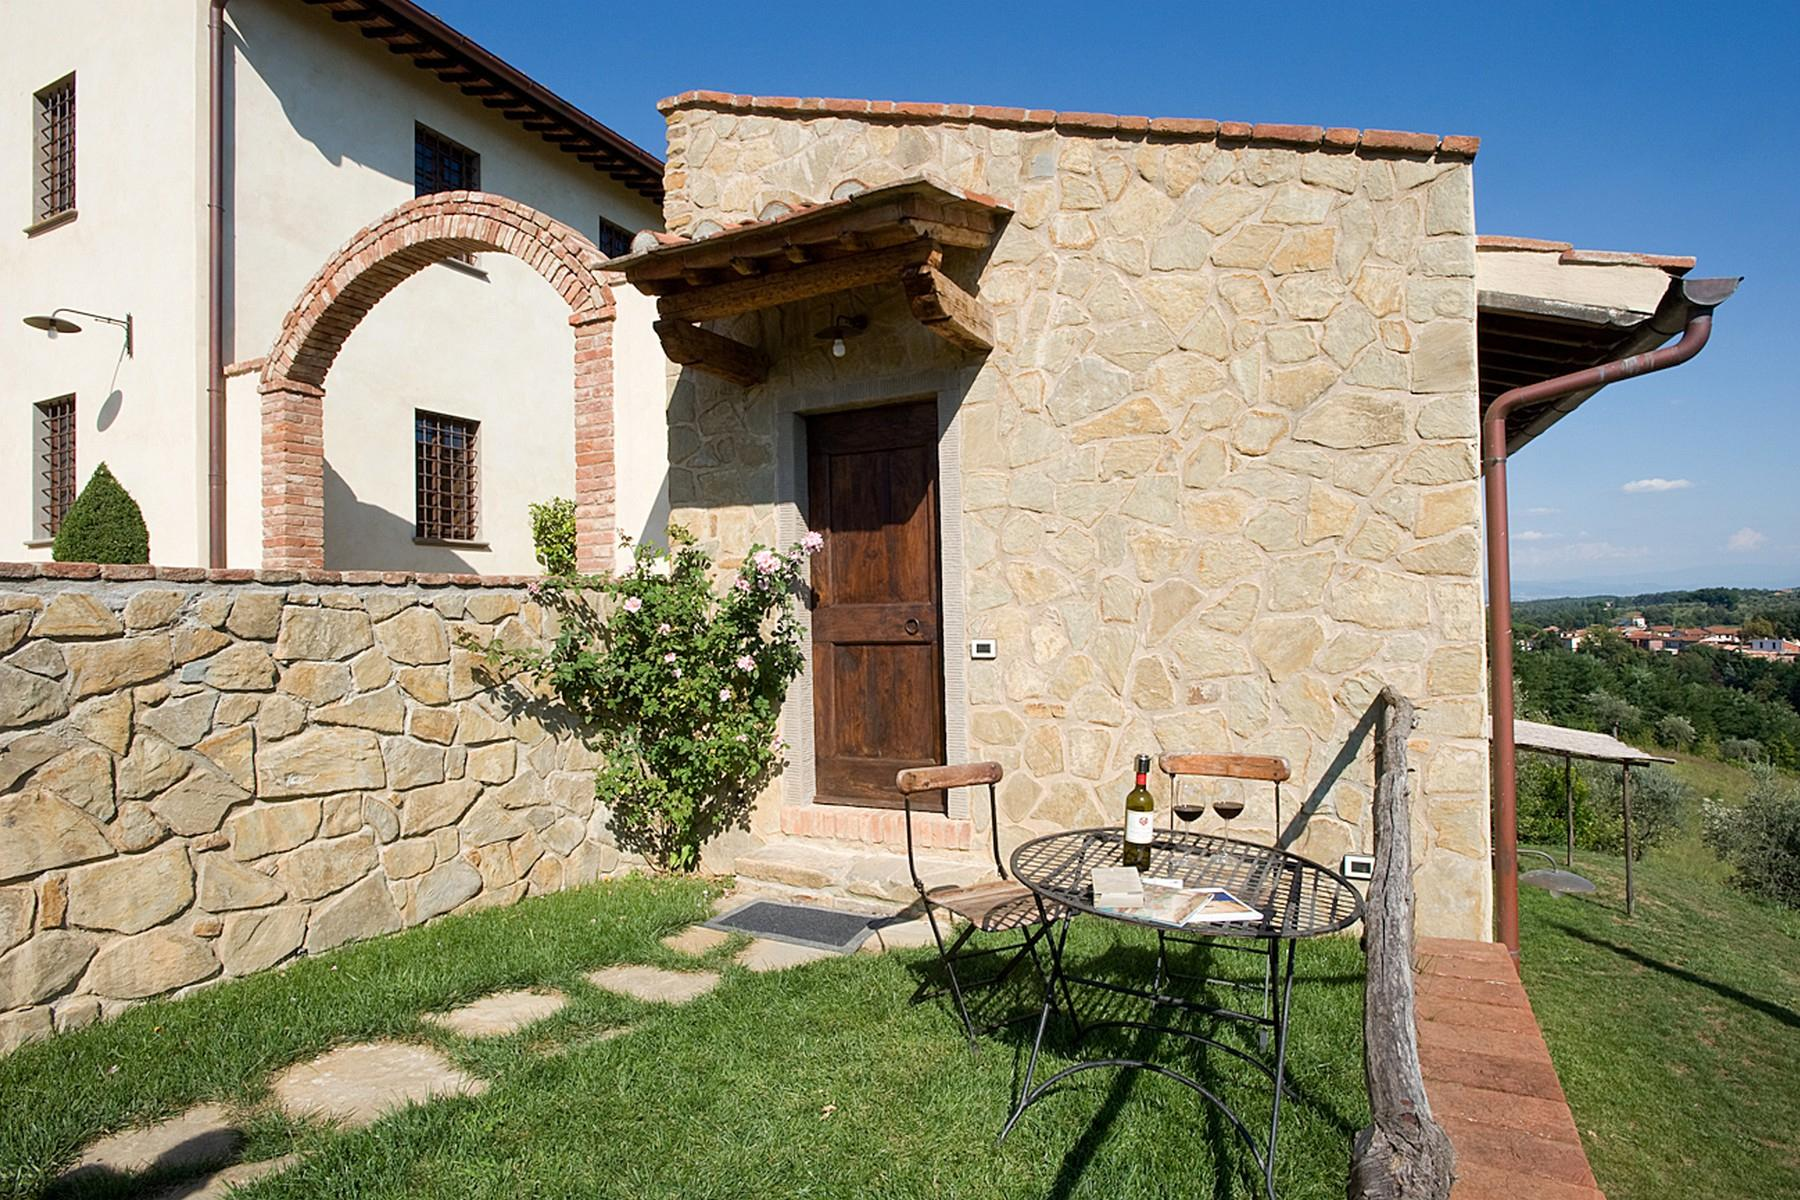 Farmhouse for sale in the Tuscan hills - 19